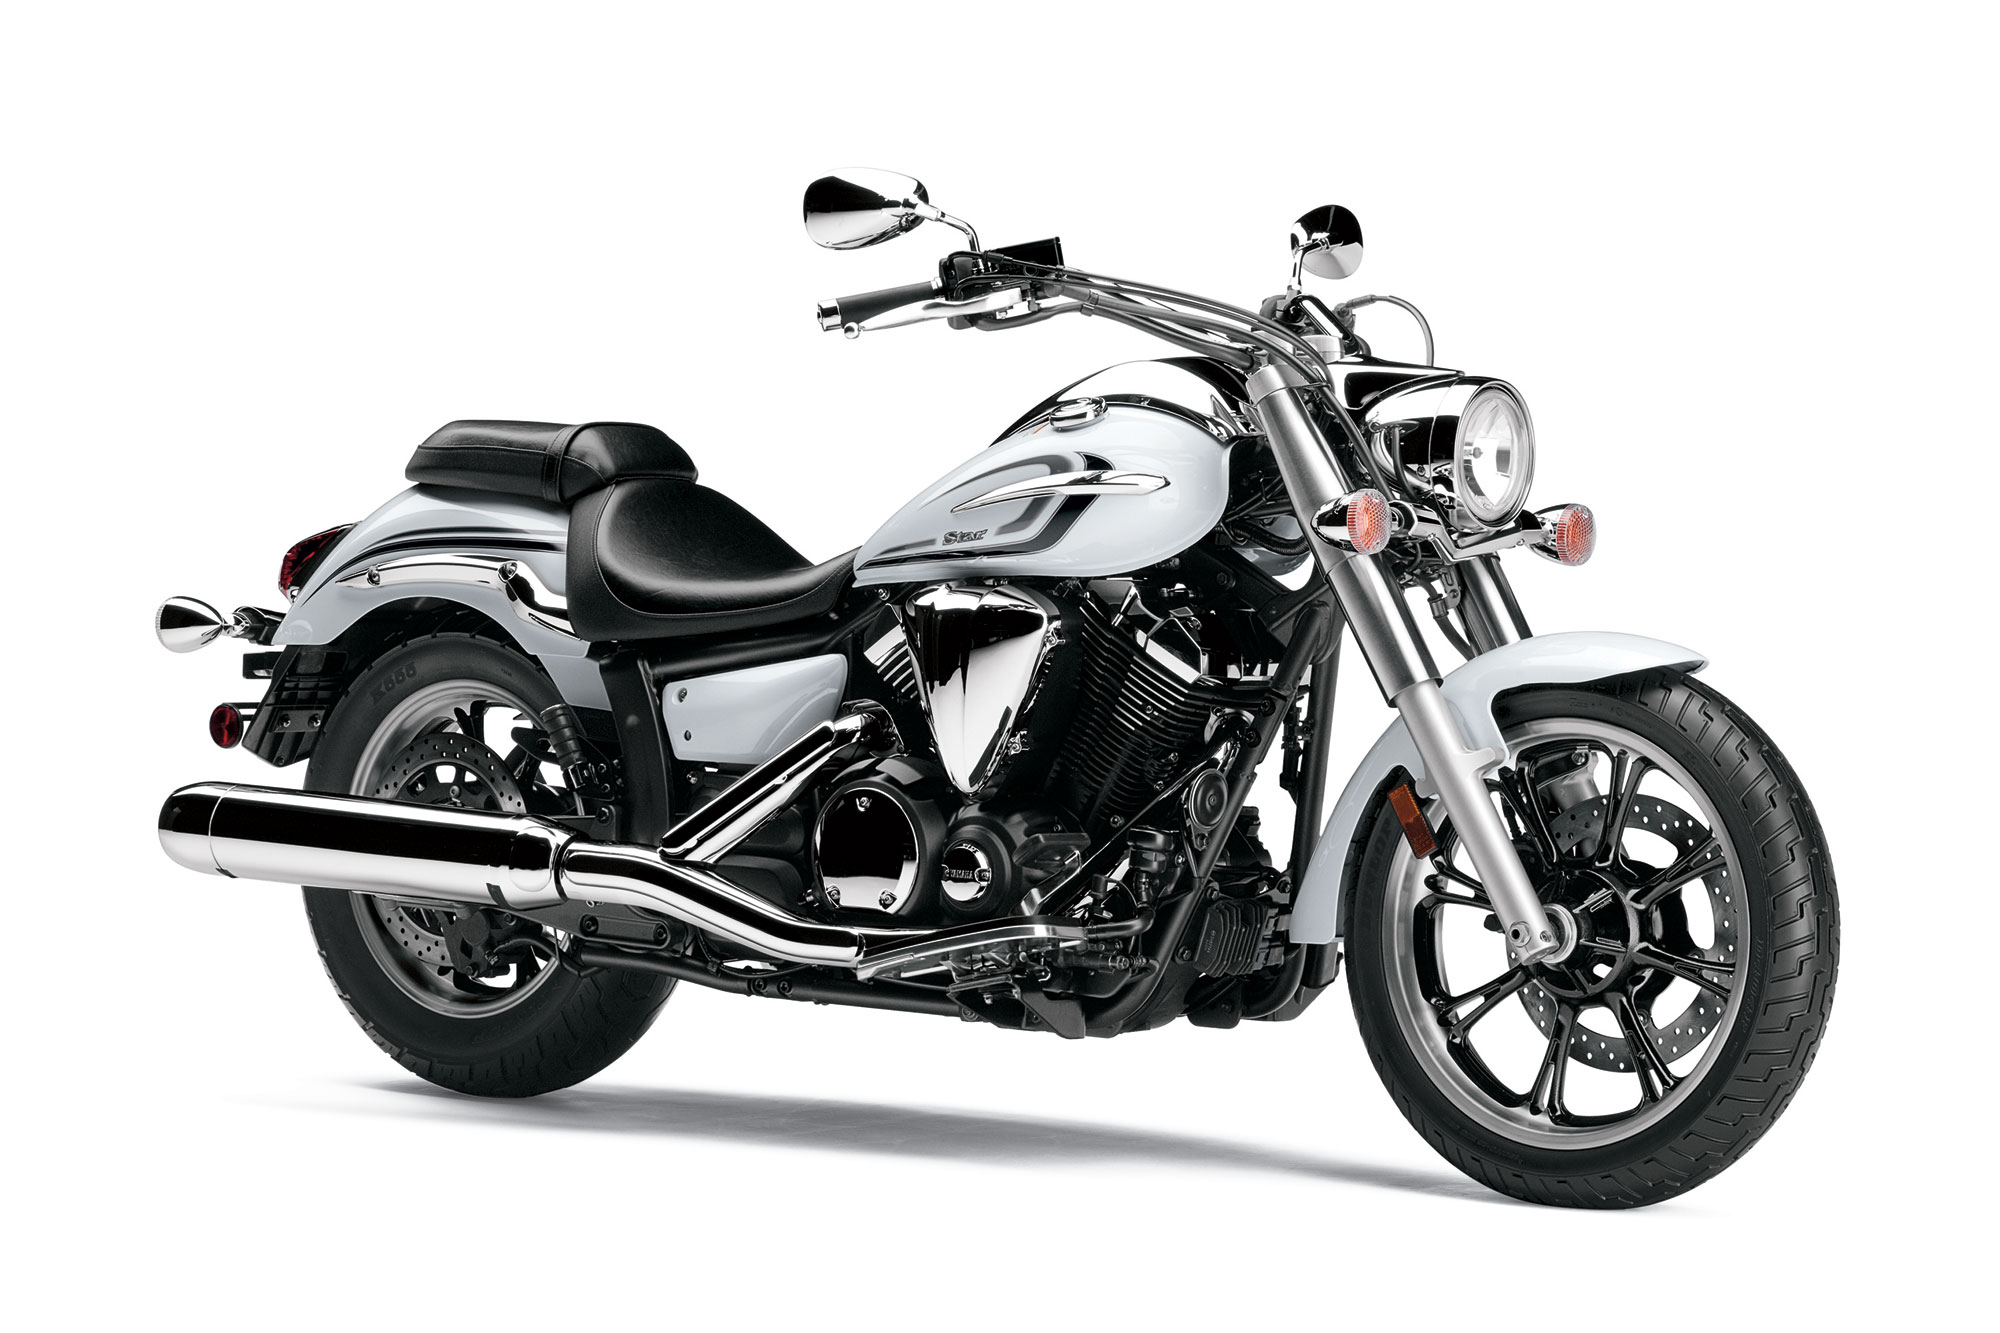 2013 Yamaha V-Star 950 Review